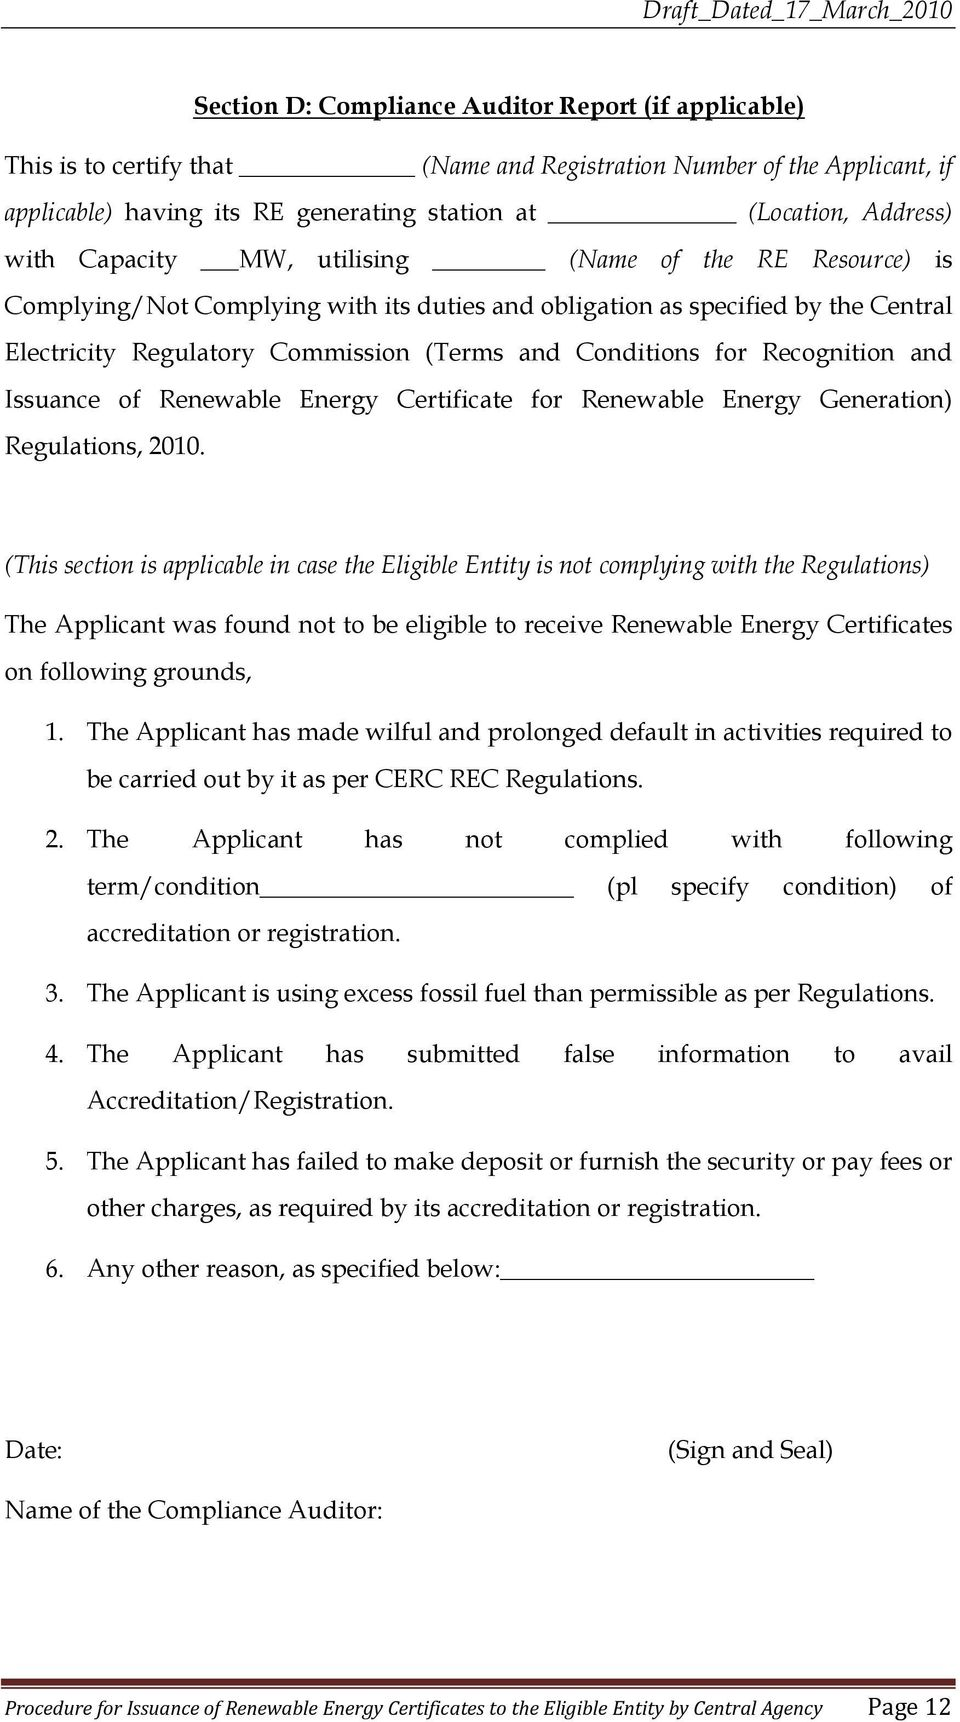 Procedure For Issuance Of Renewable Energy Certificate To The